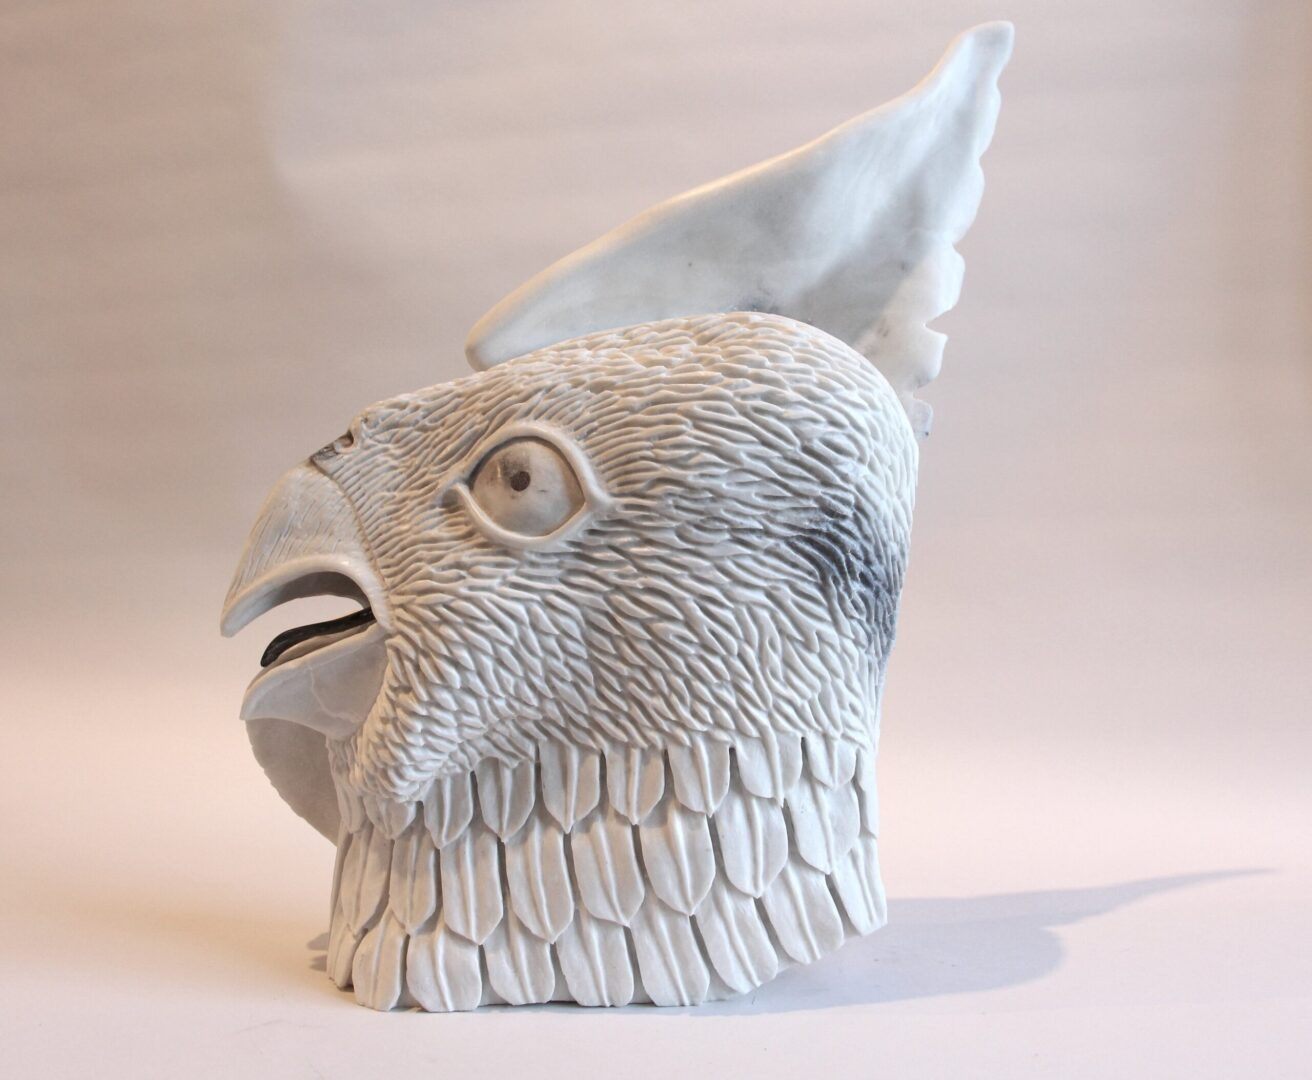 transformation Inuit Art Sculpture in marble